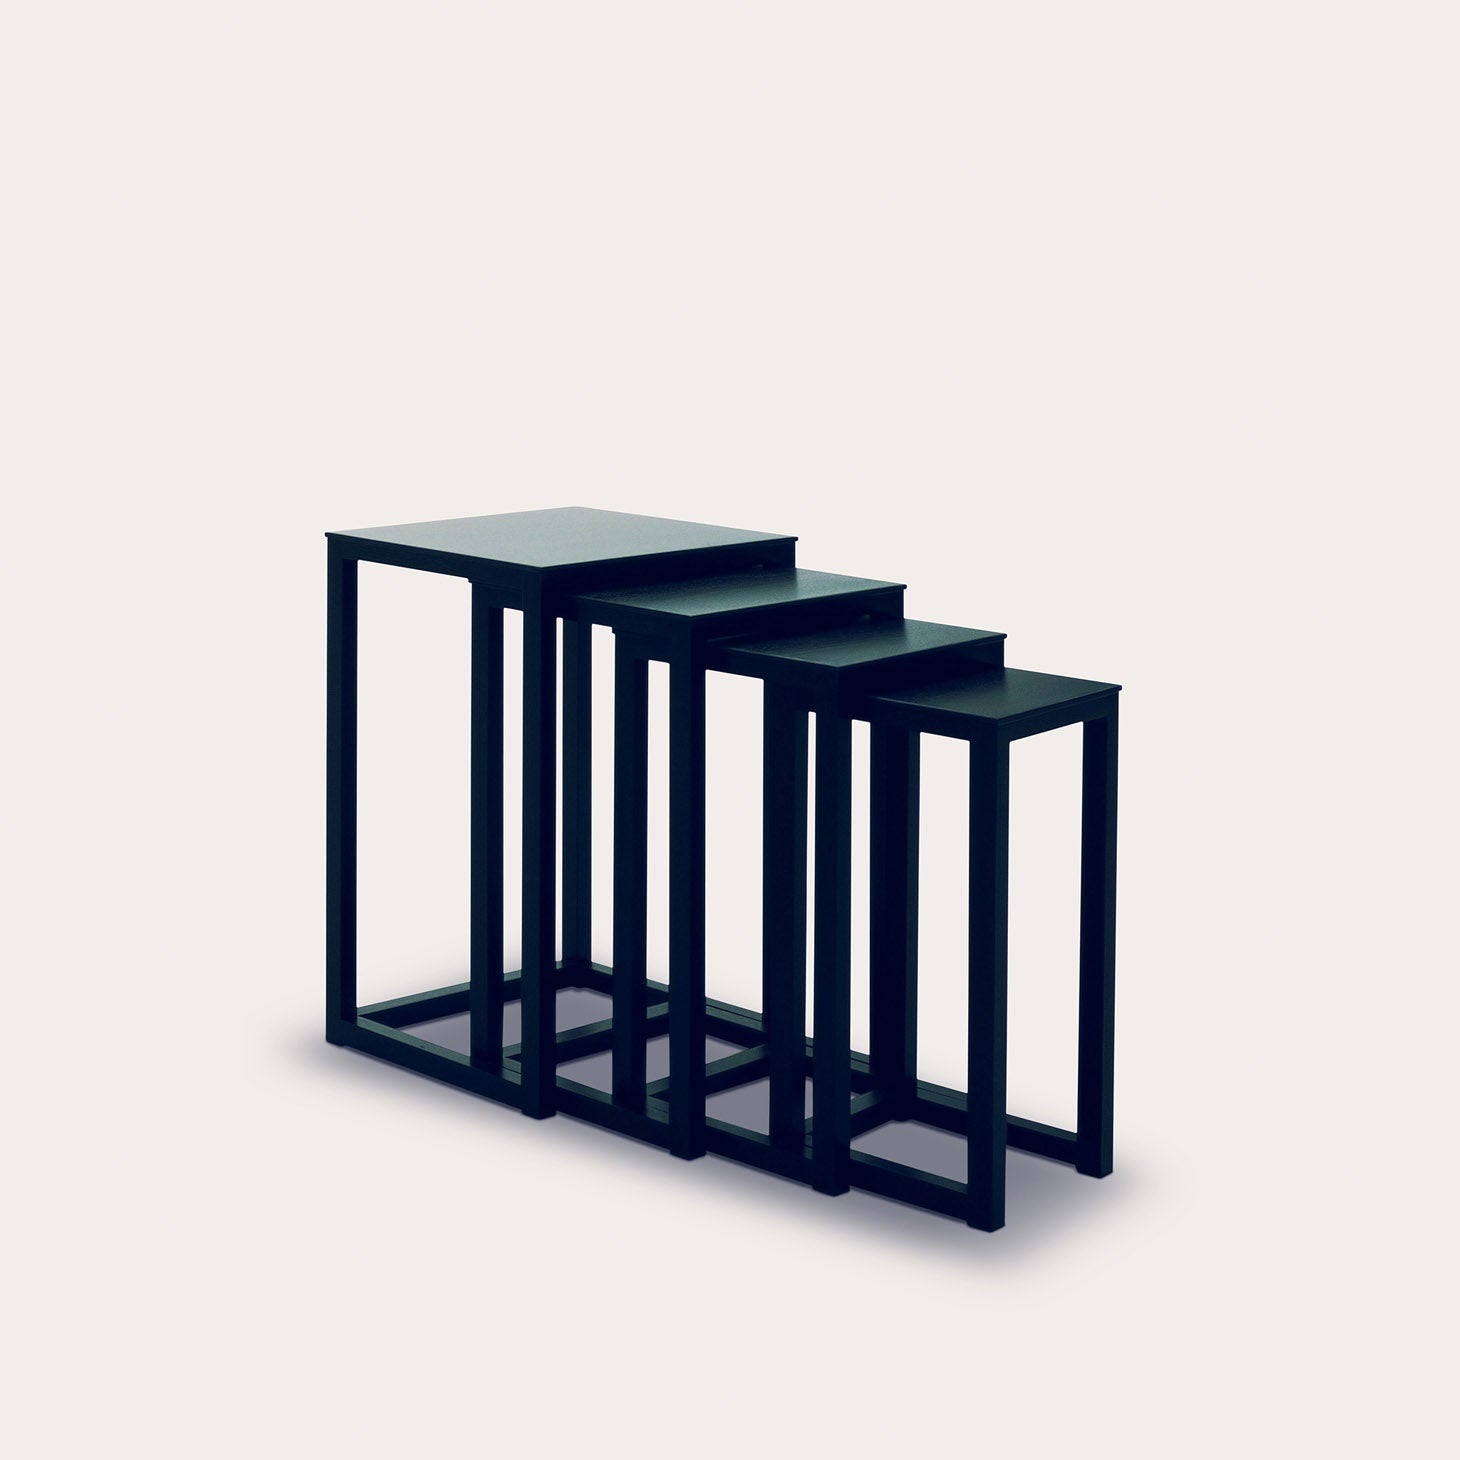 Satztische Hoffmann Tables Josef Hoffmann Designer Furniture Sku: 758-230-10020